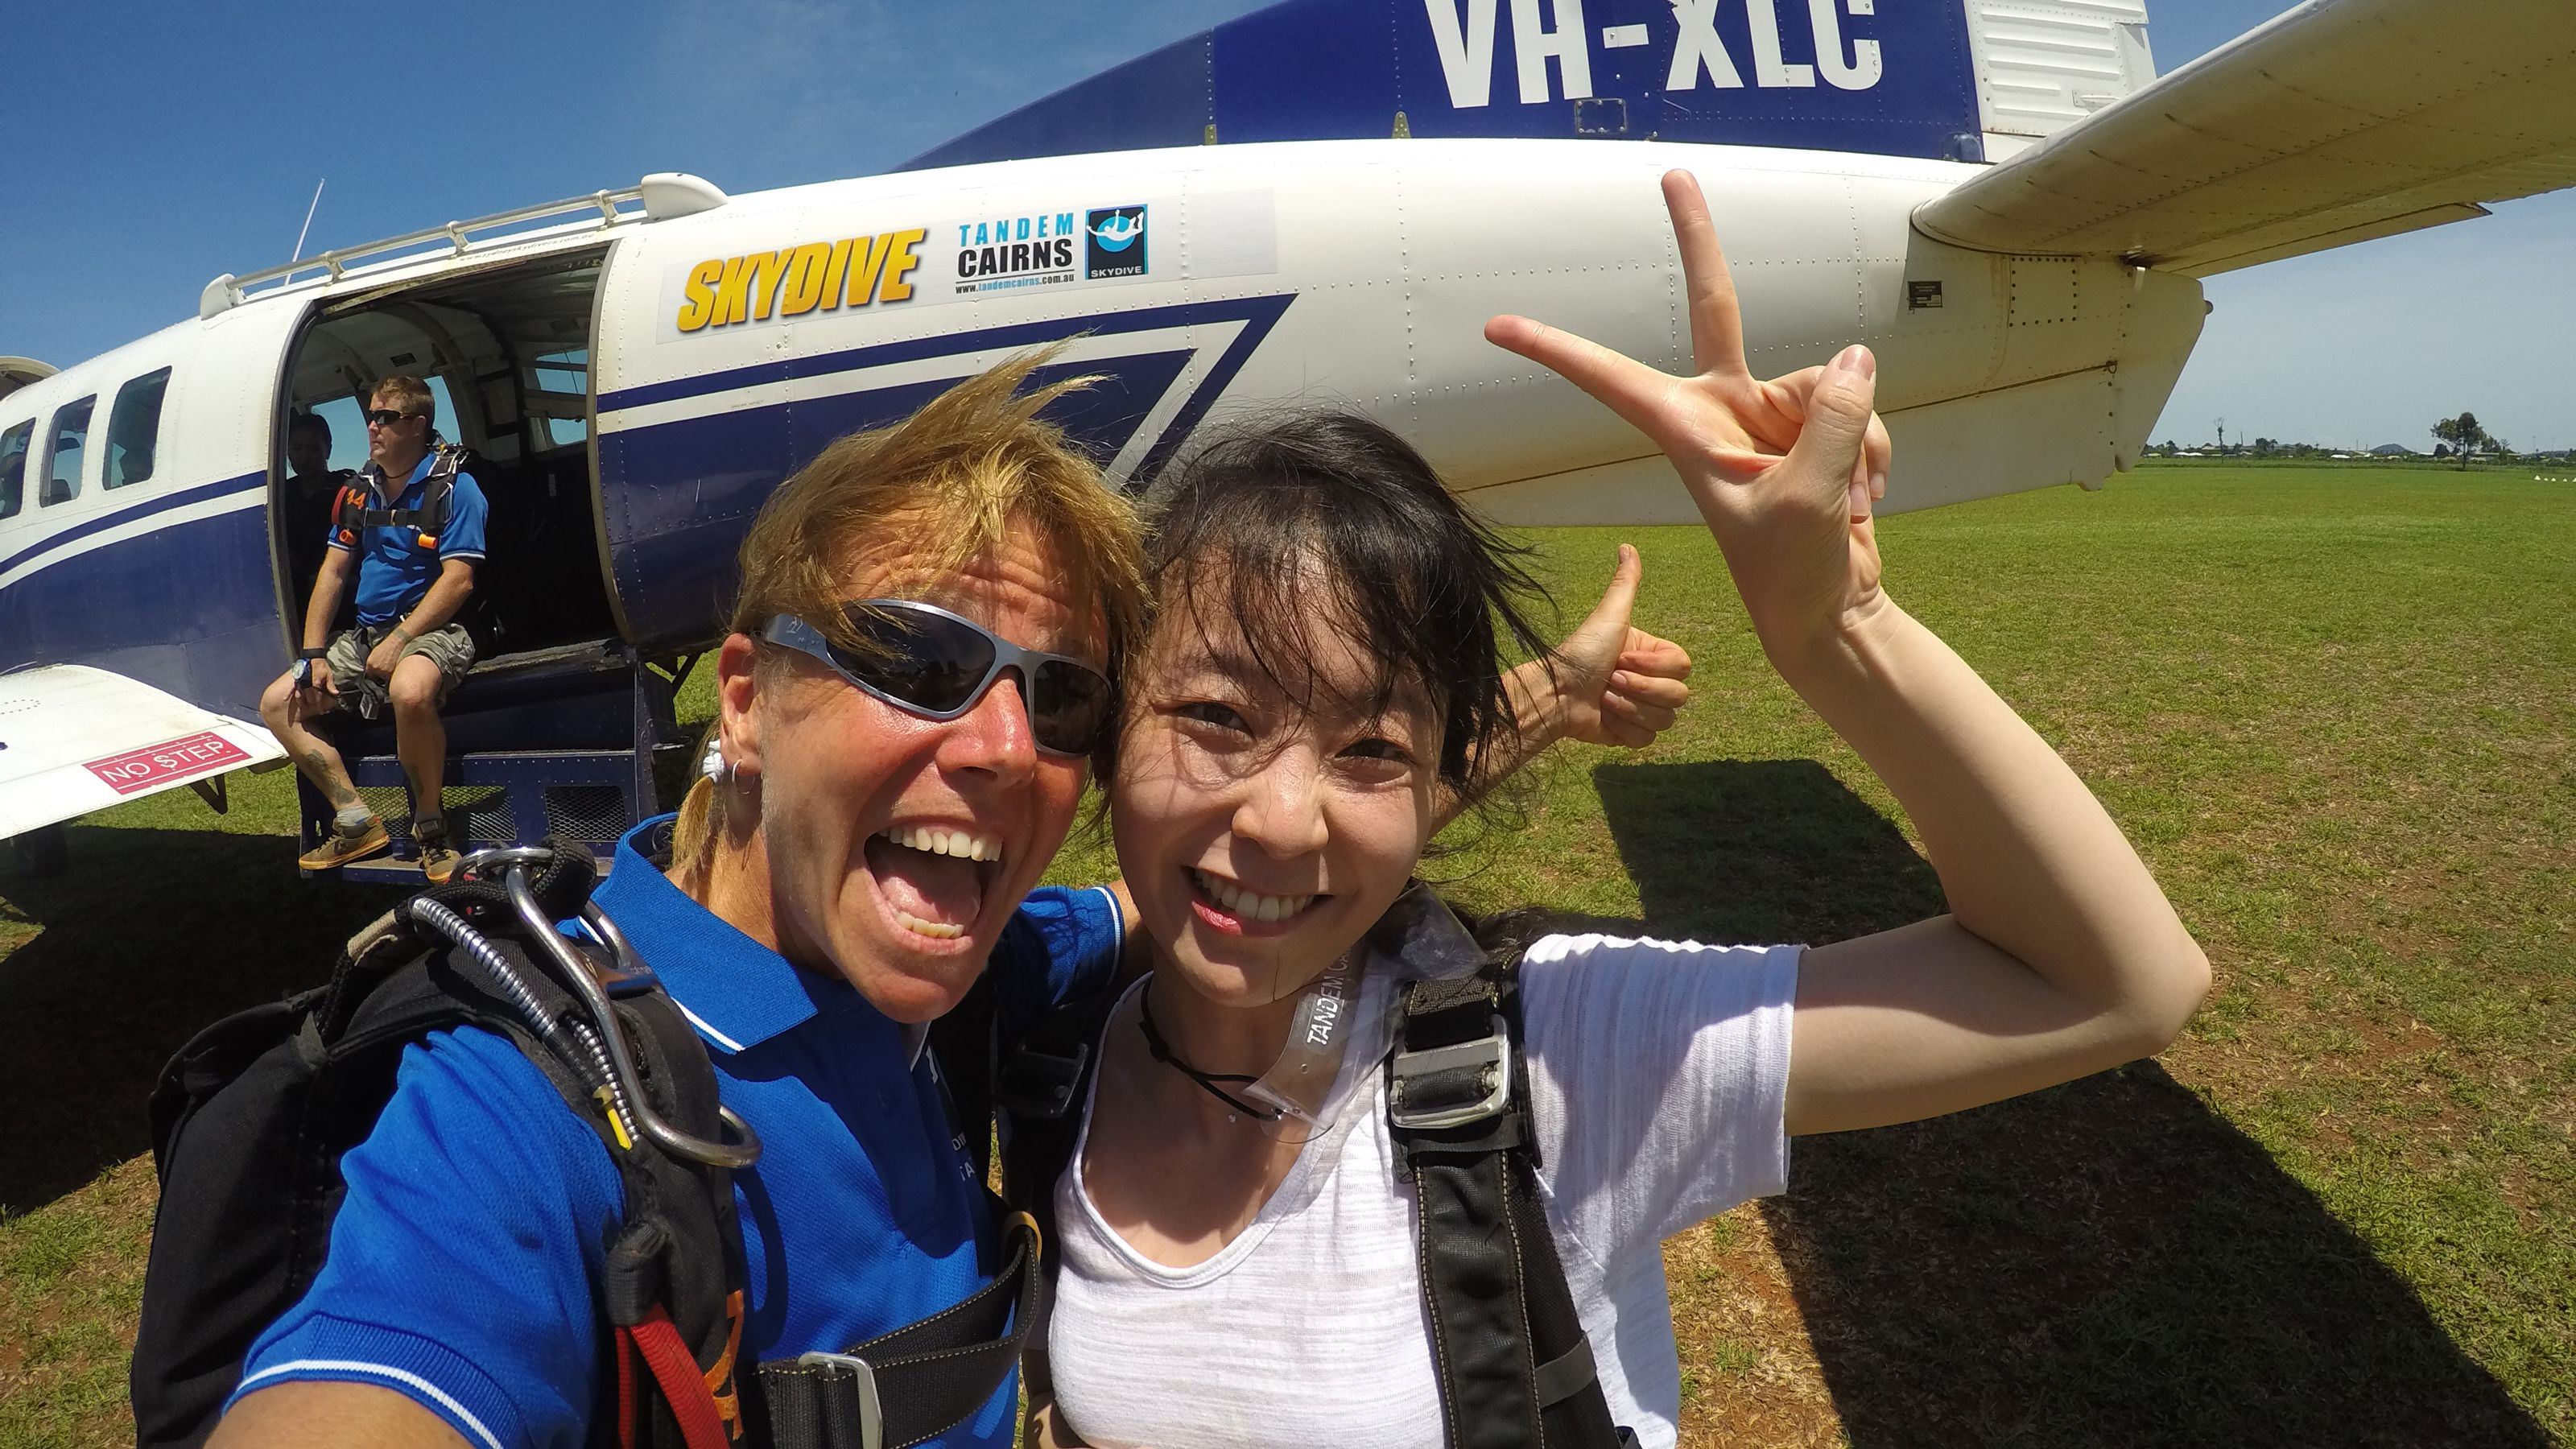 Girls in front of plane for the Tandem Skydive in Cairns Australia